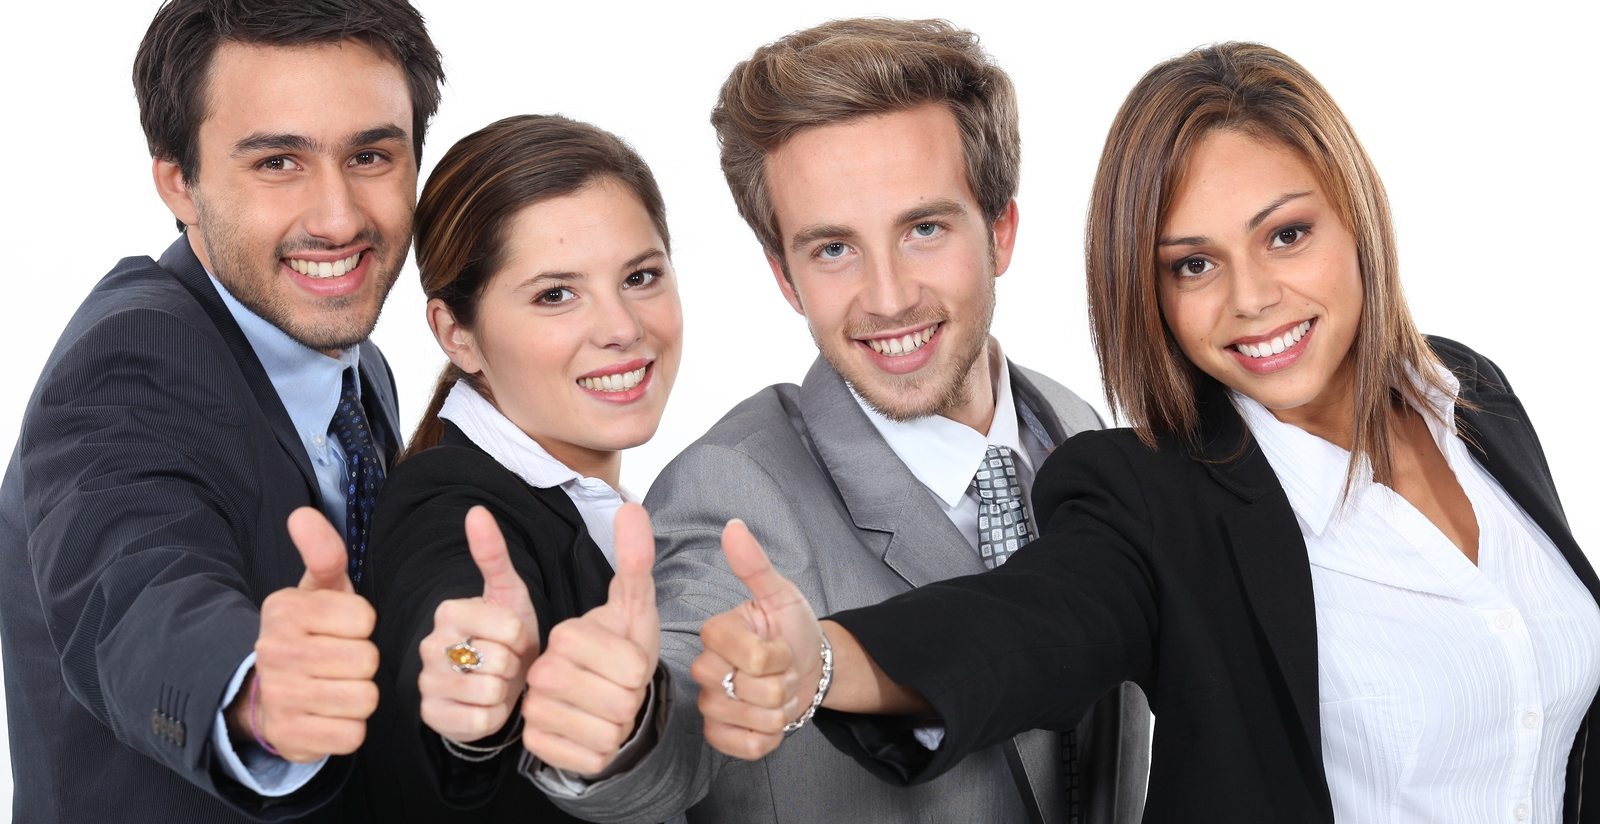 Four young professionals giving the thumbs up